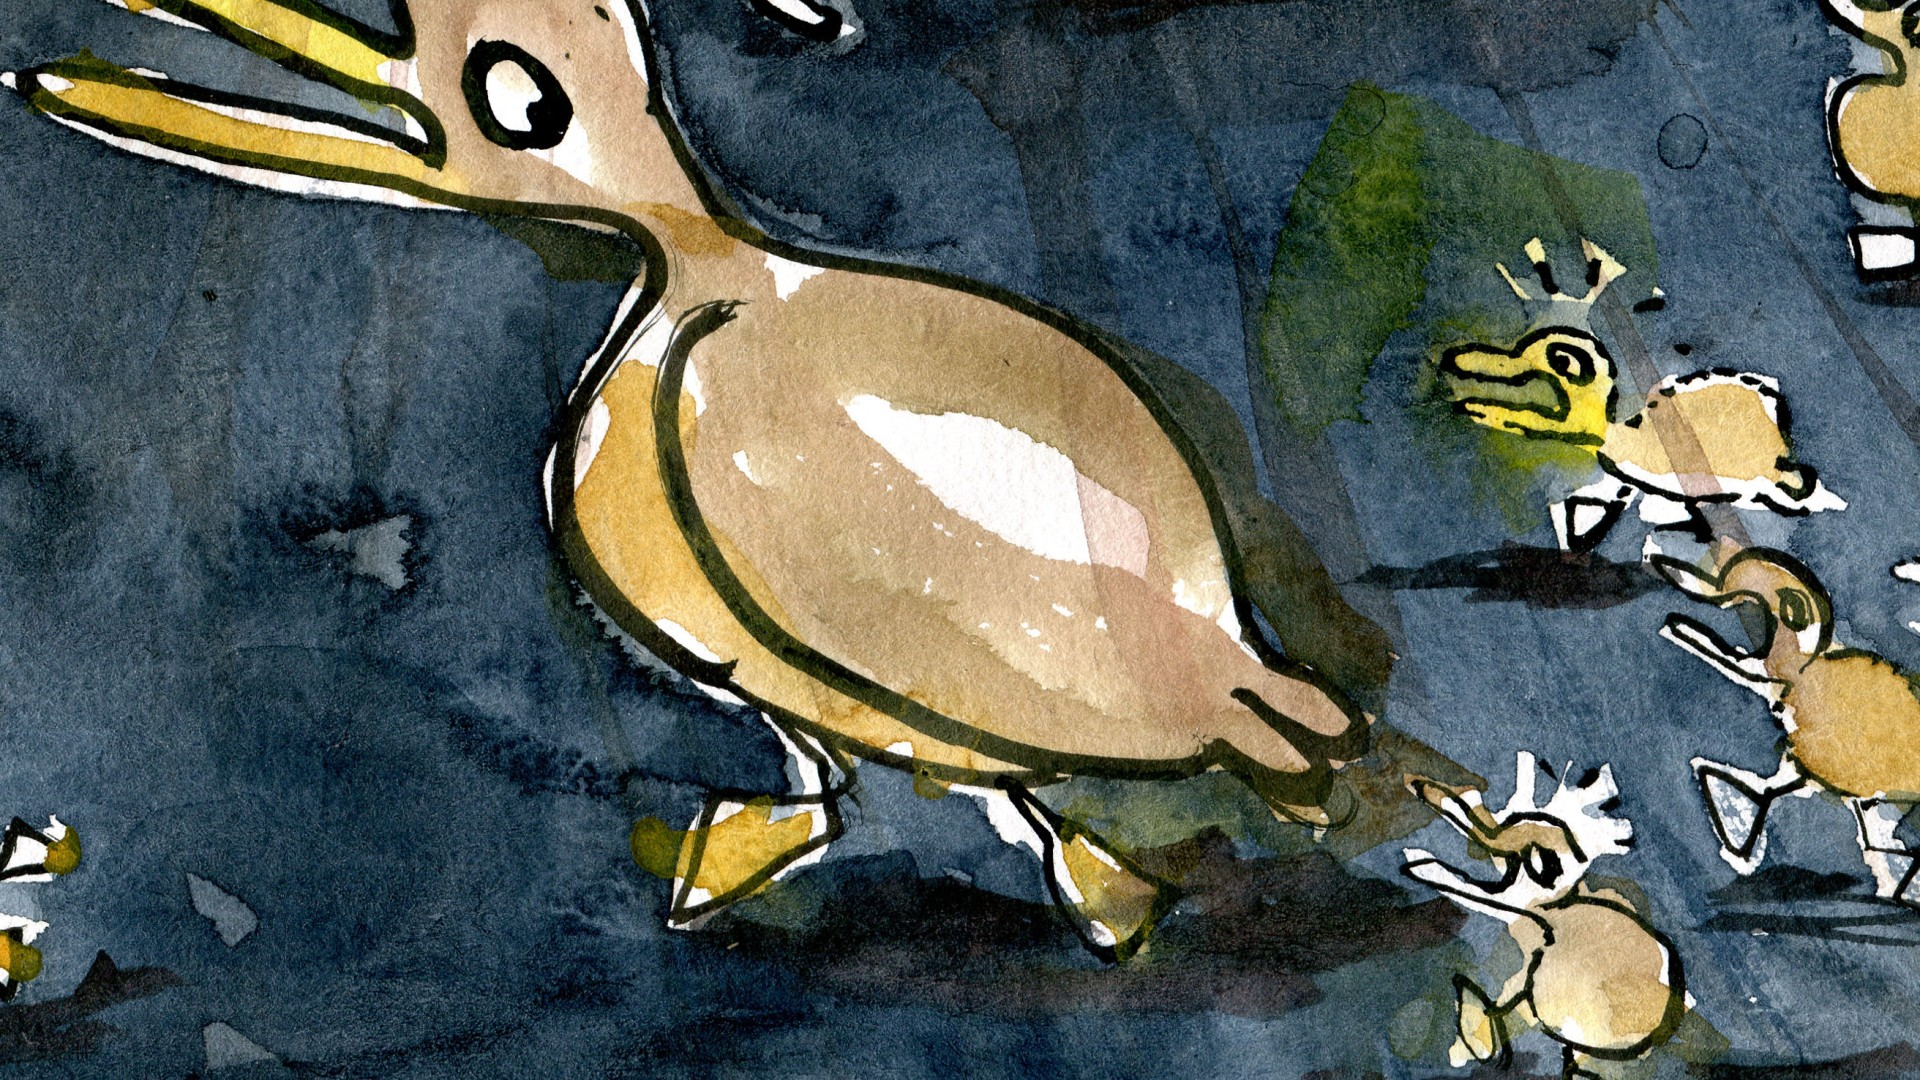 Sketch of a duck